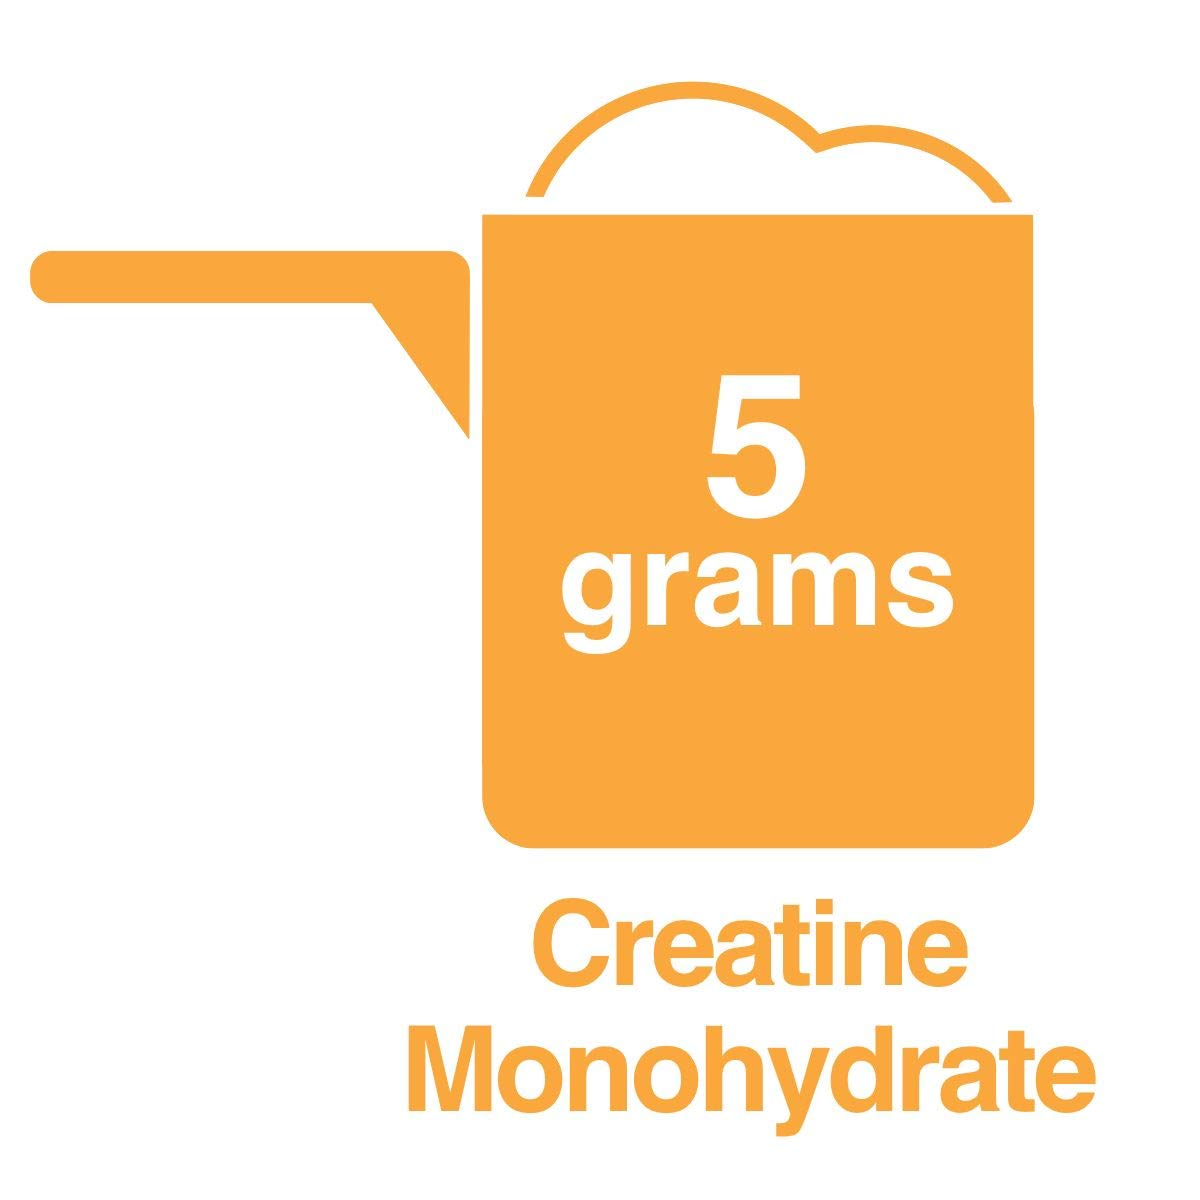 Creatine Monohydrate Micronized Powder, Ultra-Pure 100% Creatine Monohydrate, 630 Grams, 120 Servings, Pre and Post Workout, Prevents Muscle Breakdown, Preserves Muscle Mass, Helps Muscle Building